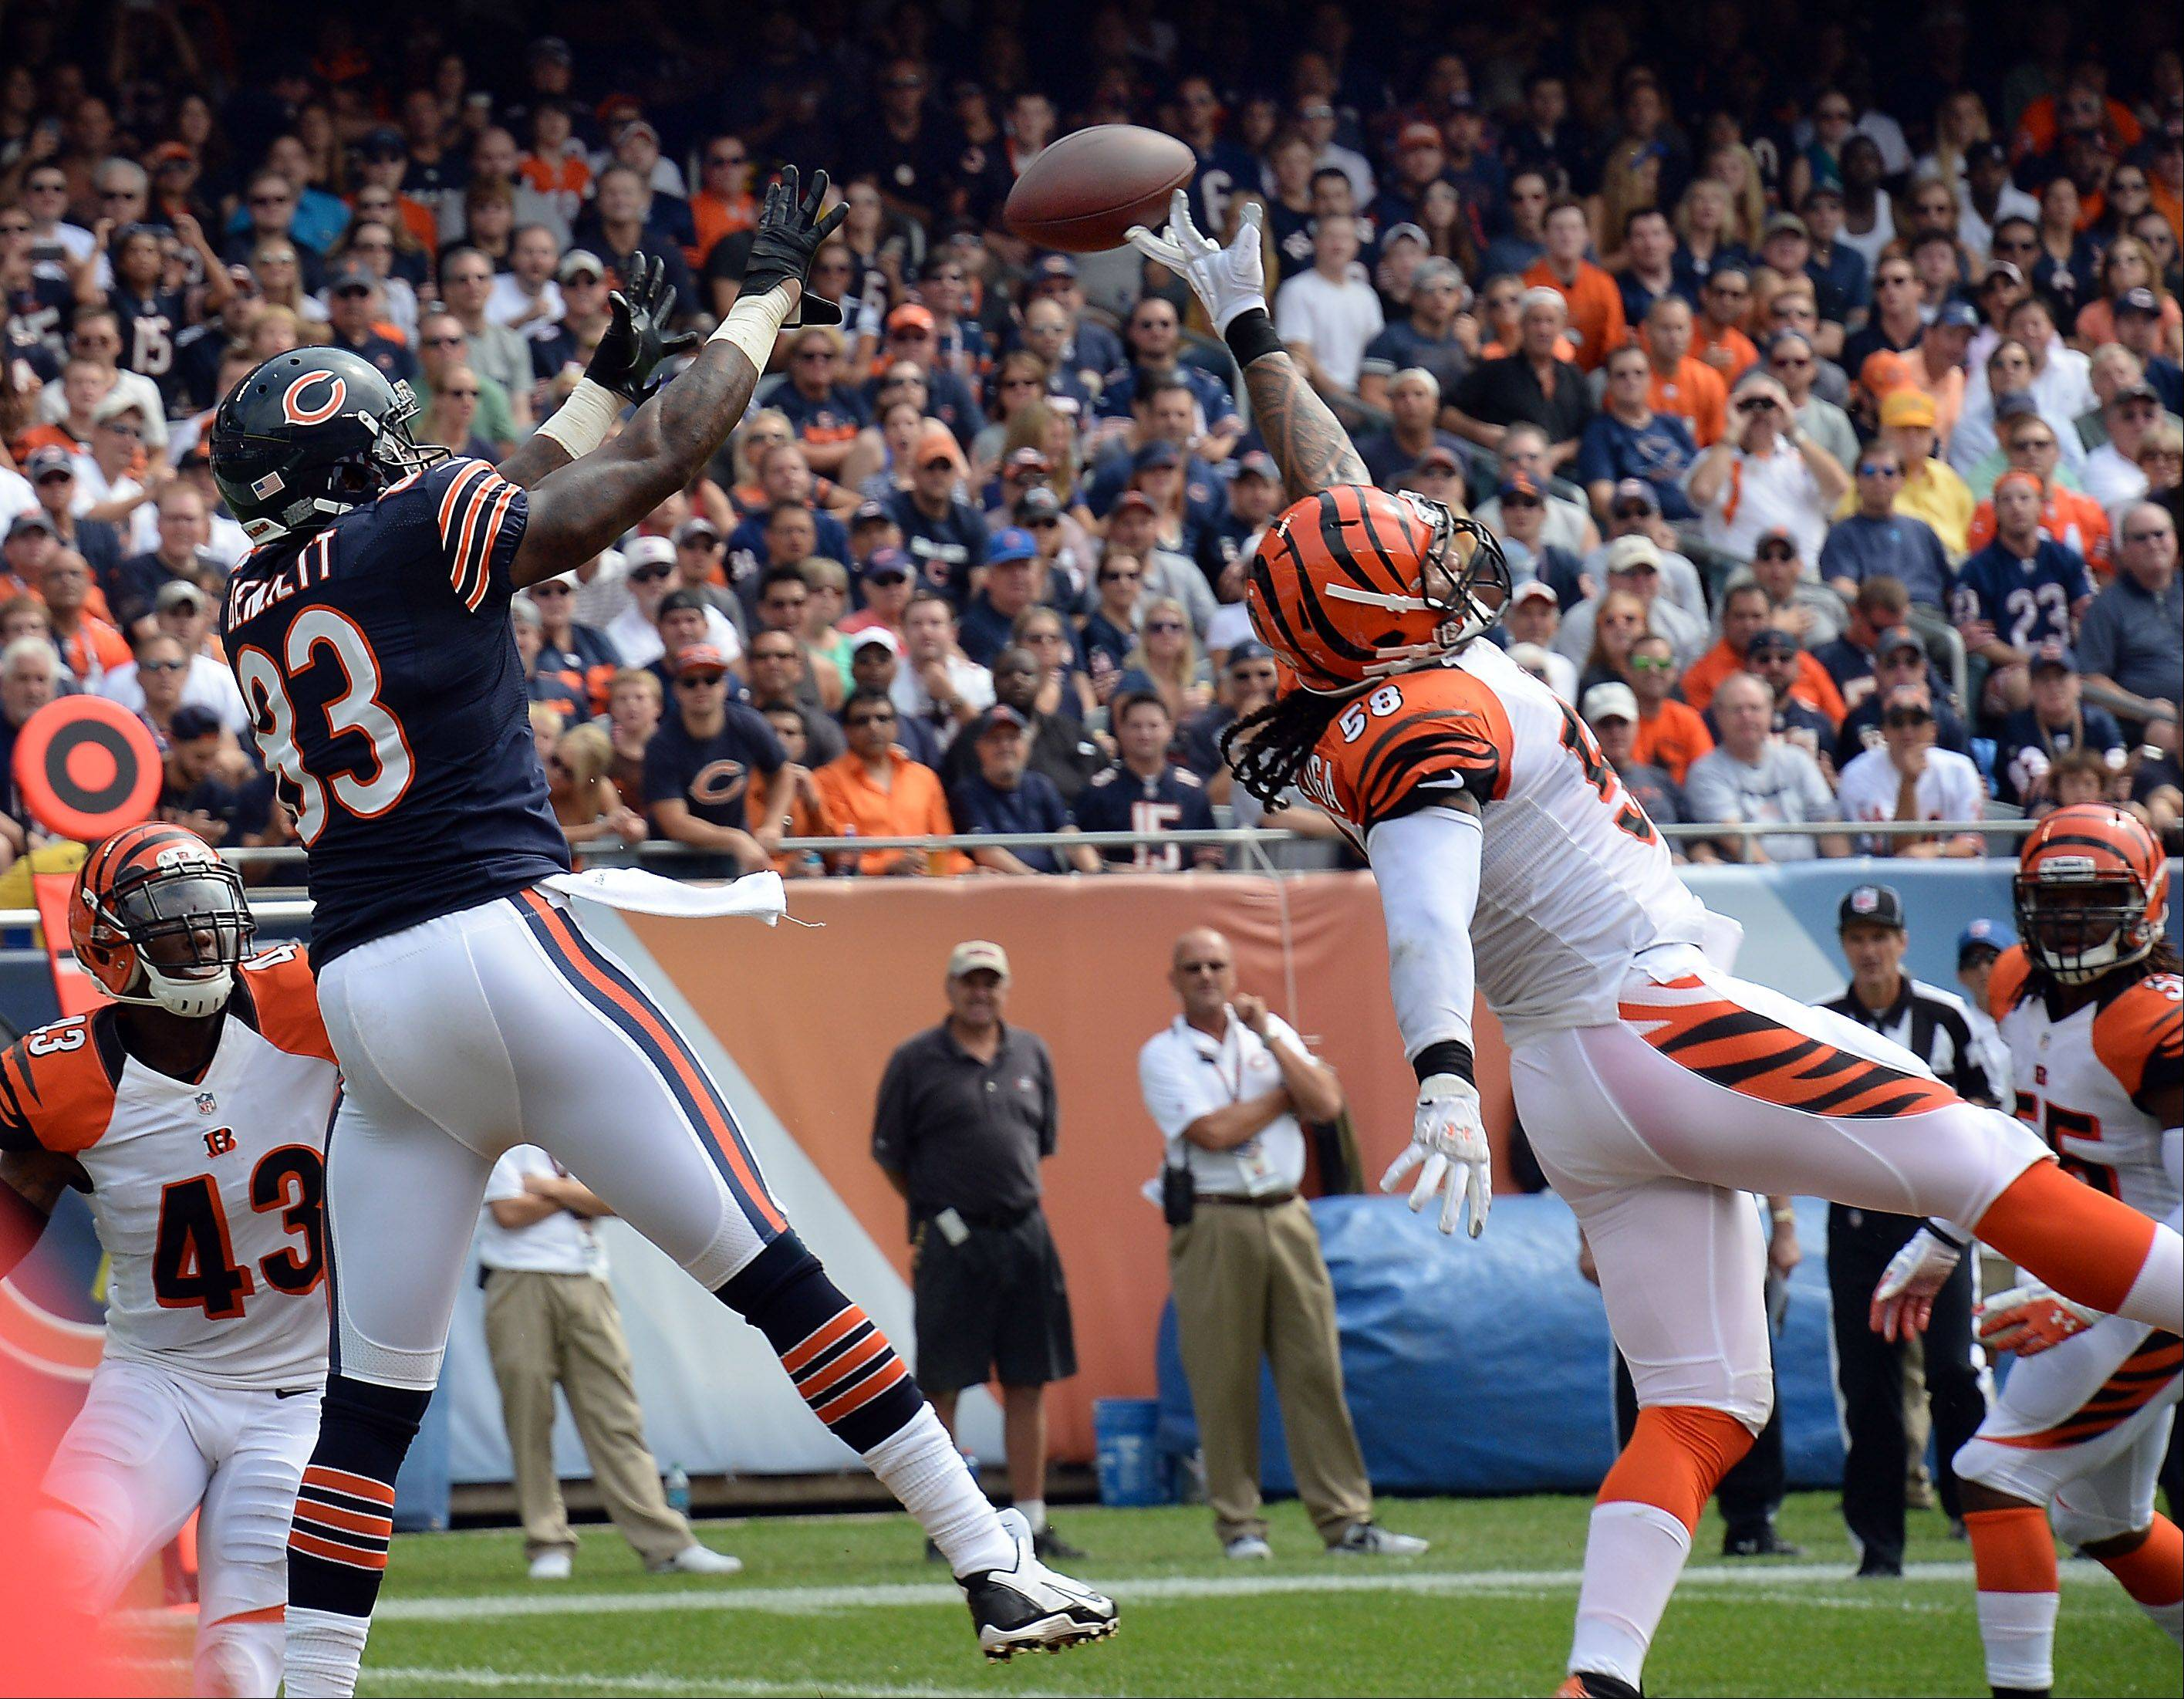 Chicago Bears Martellus Bennett makes a touchdown catch as Cincinnati Bengals Rey Maualuga tries to tip the ball in the first quarter of the season opener at Soldier Field in Chicago.